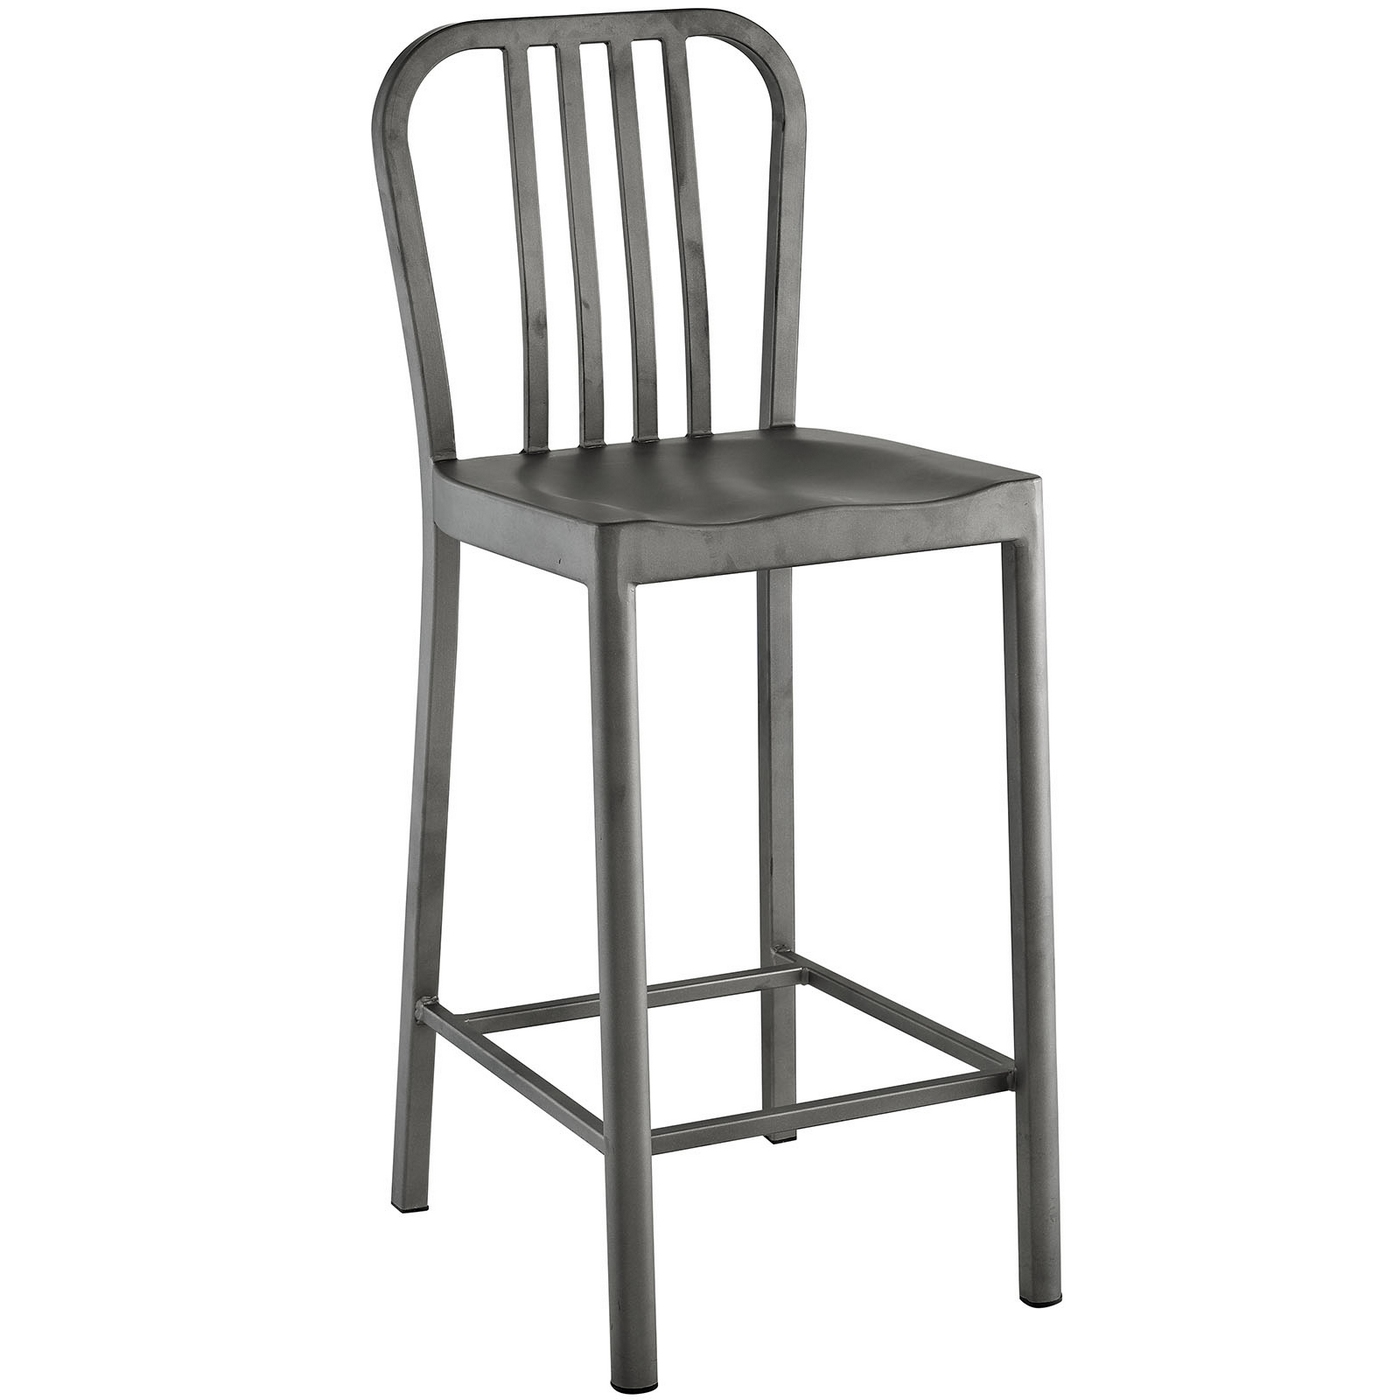 Industrial Counter Height Bar Stools Clink Industrial Counter Height Stool With Brushed Steel